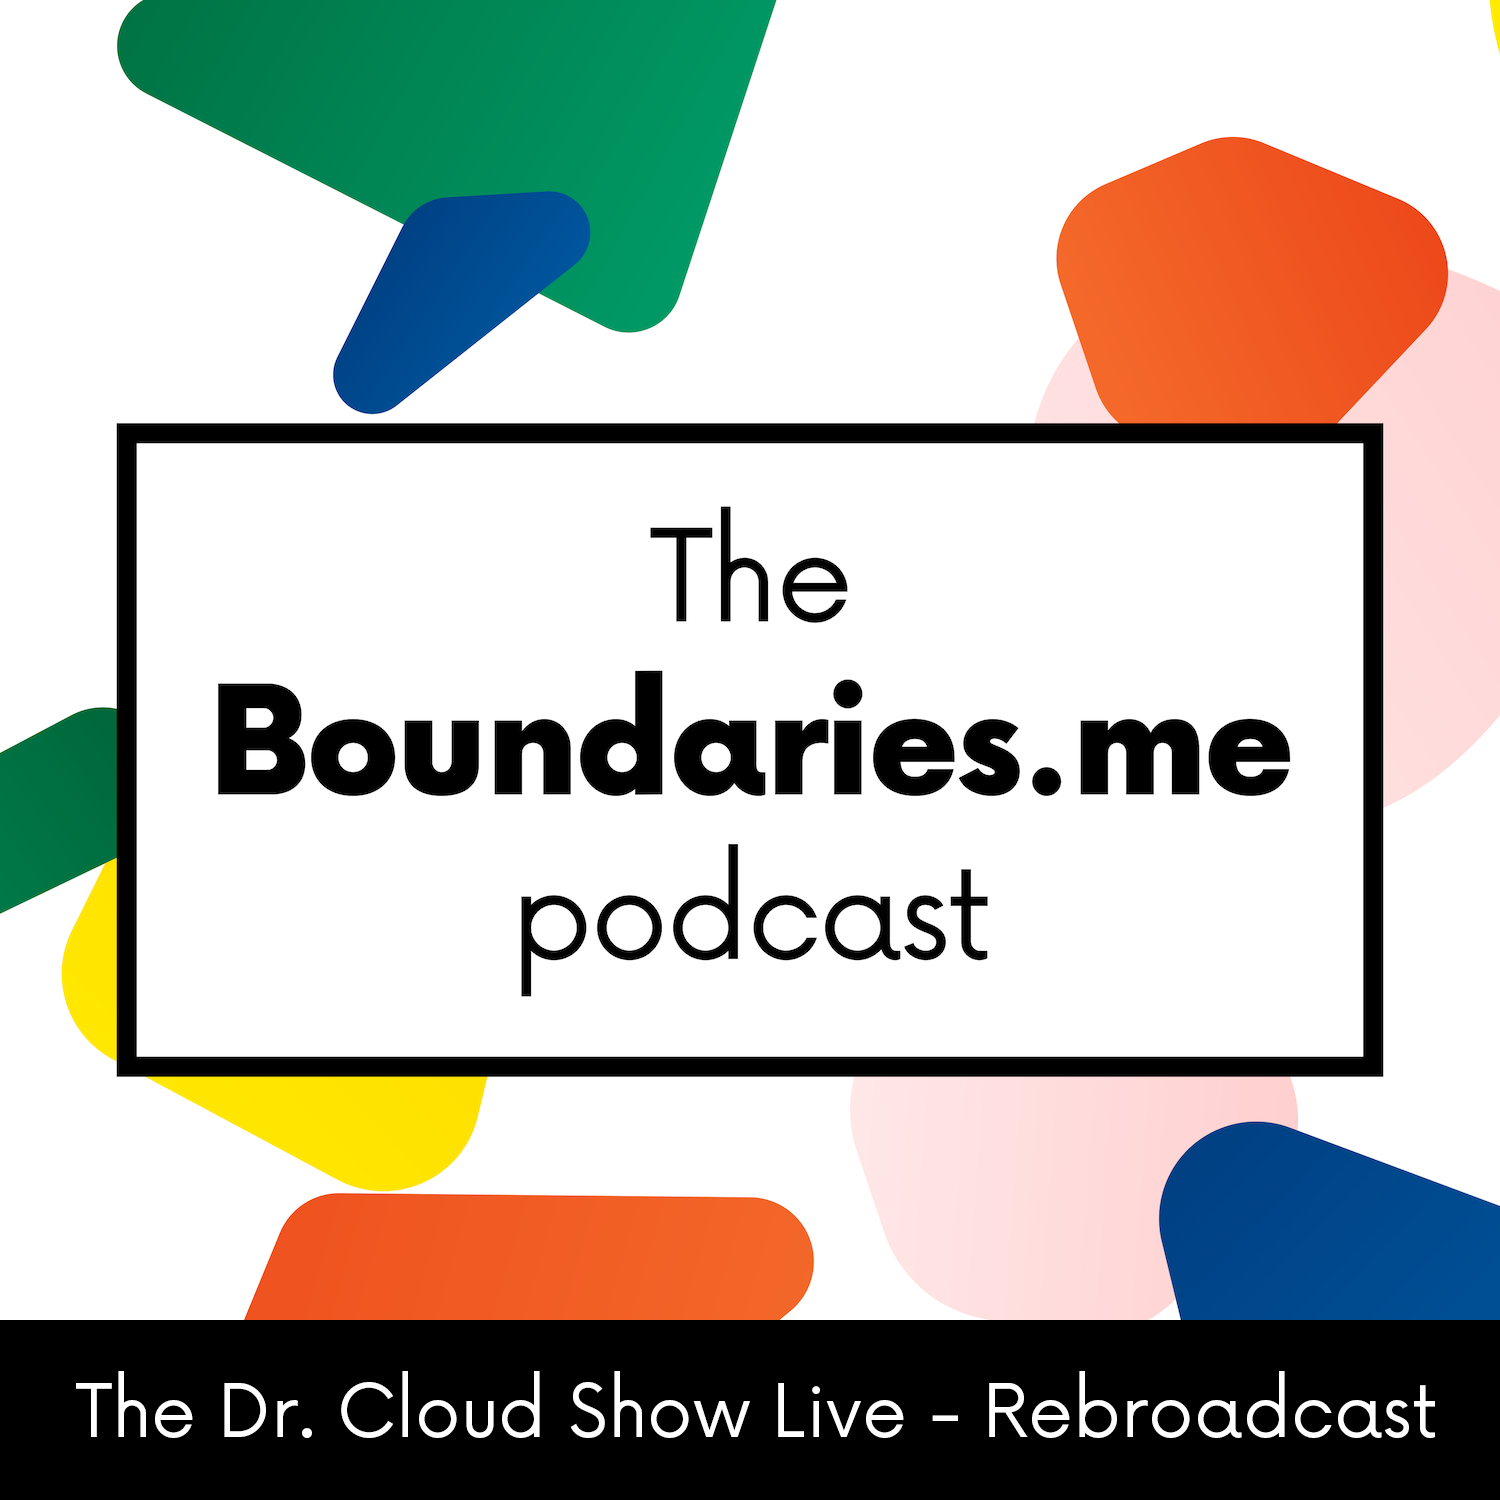 Episode 28 - The Dr. Cloud Show Live - Isolation and Being Single